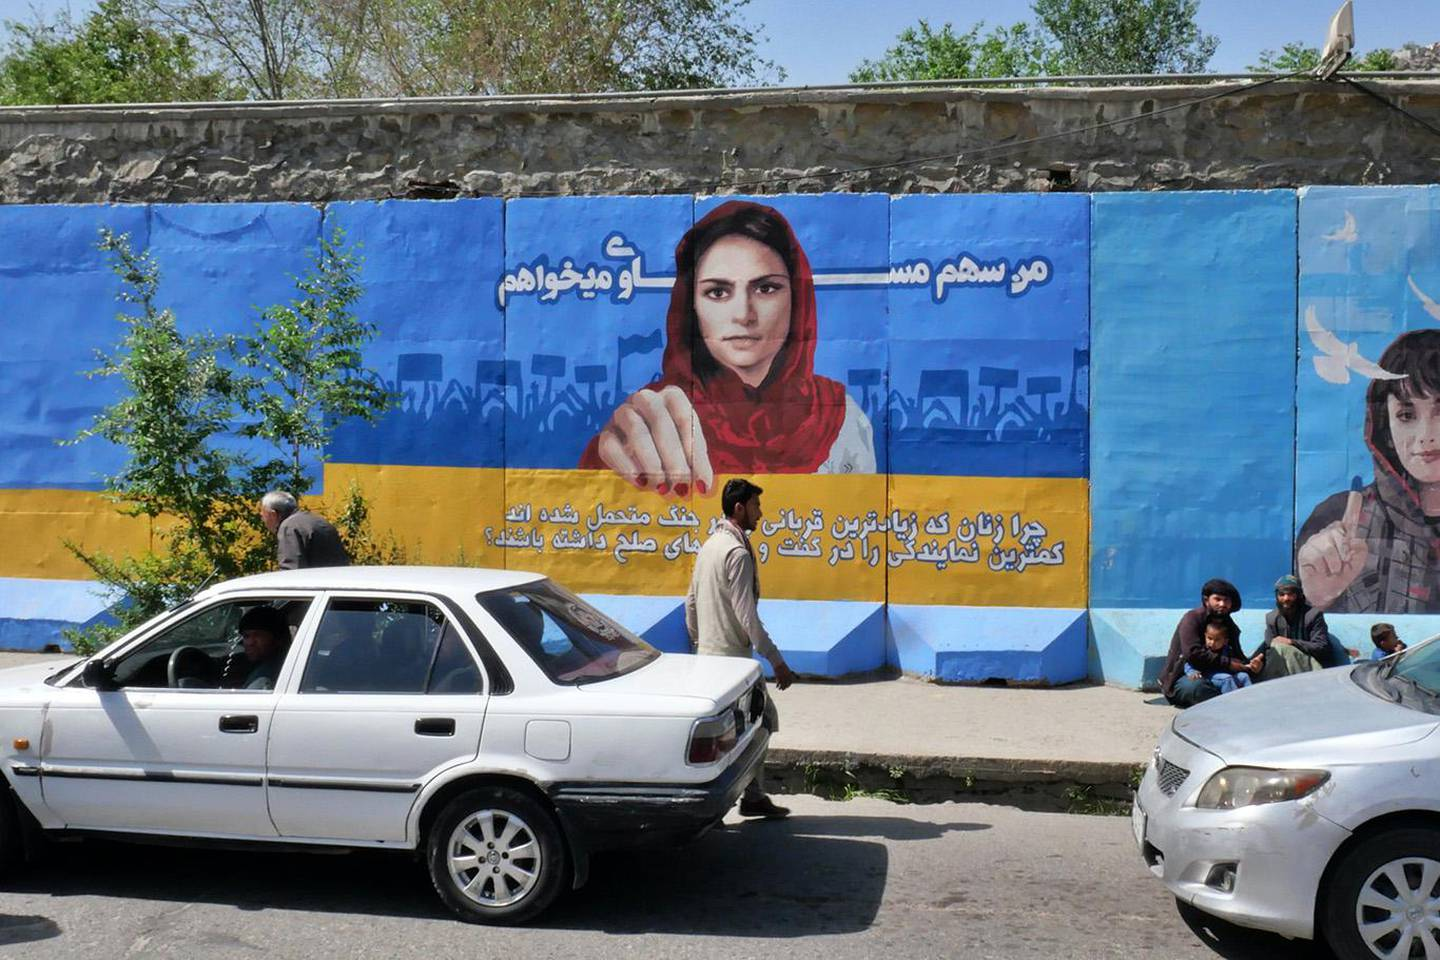 """Pictured: ArtLords' most recent mural in Kabul asking the question """"Why do the women of Afghanistan who suffered the most in the wars have the least representation in the Afghan Peace Process?""""Photo by Charlie FaulknerApril 2021"""